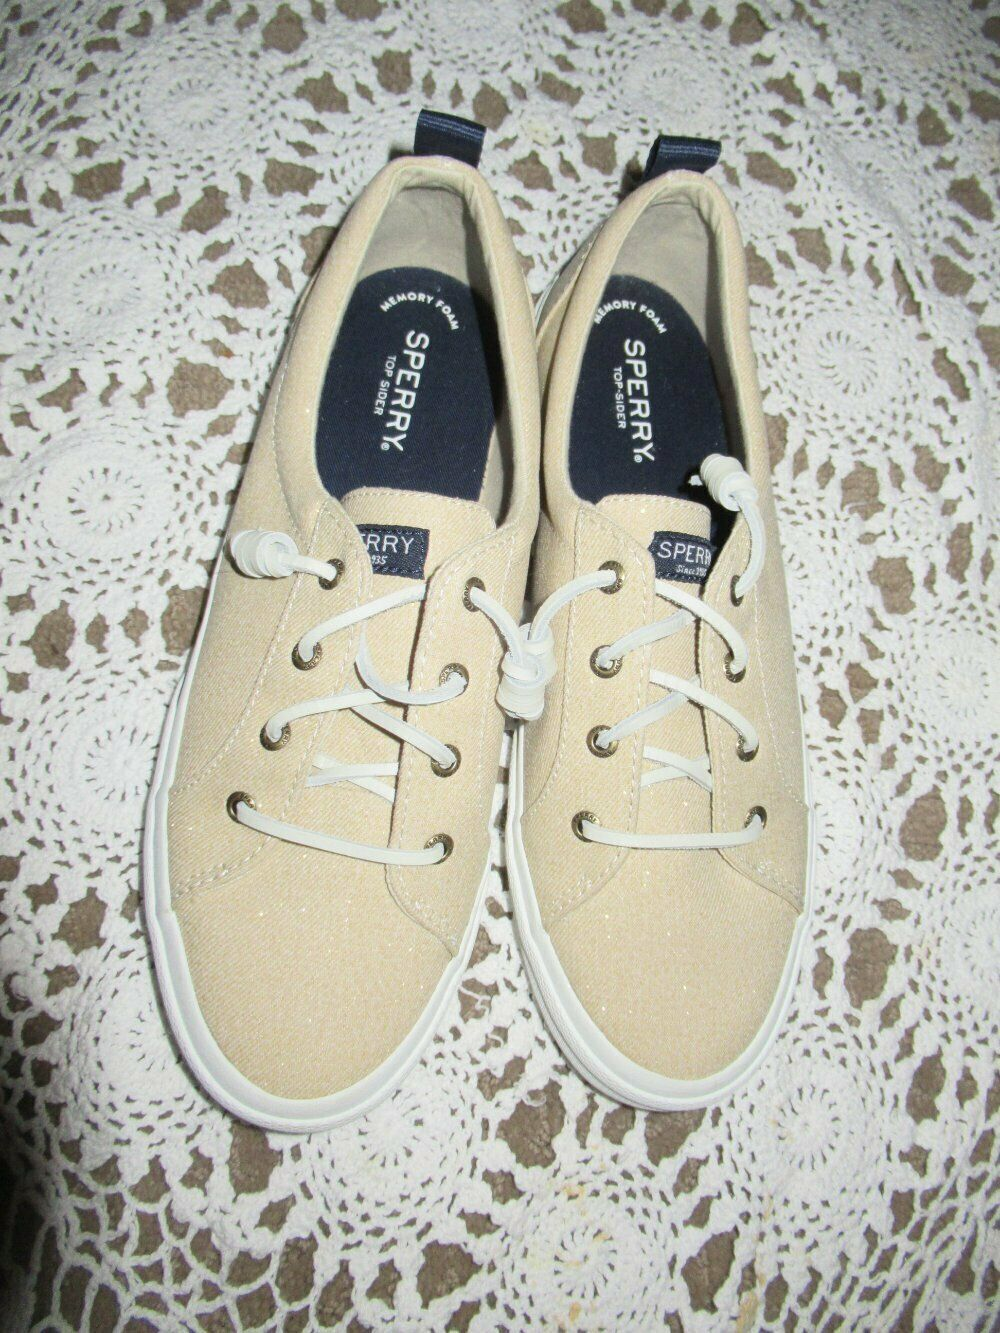 new Sperry glittery beige slip on canvas no tie shoes ladies 10 M free ship USA